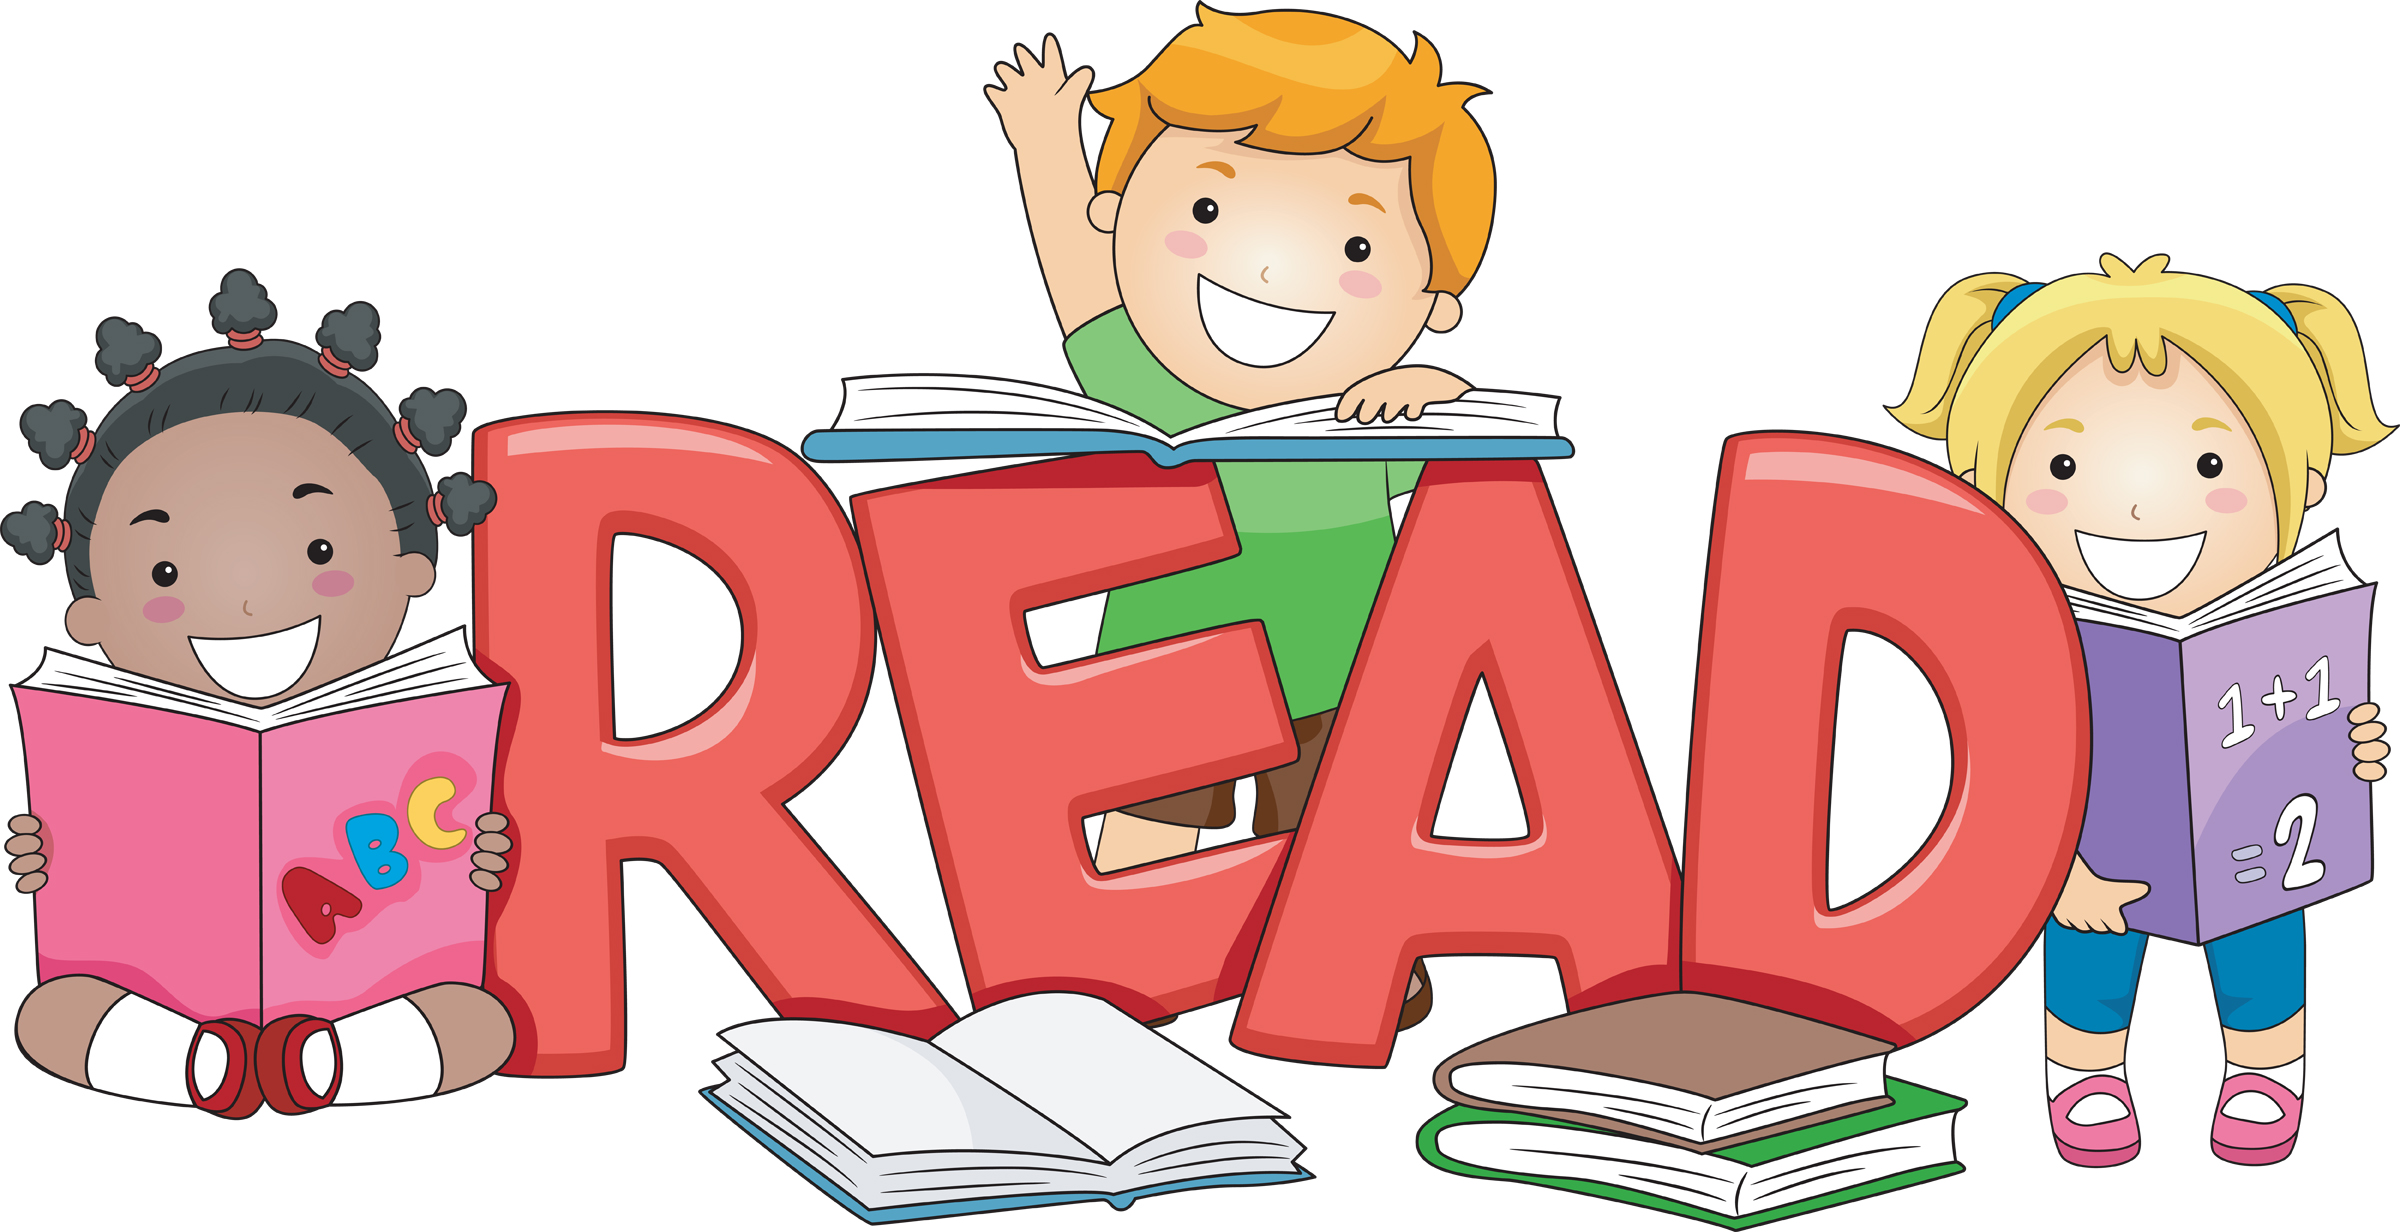 Reading Clipart - usarmycorpsofengineers-Reading Clipart - usarmycorpsofengineers-5